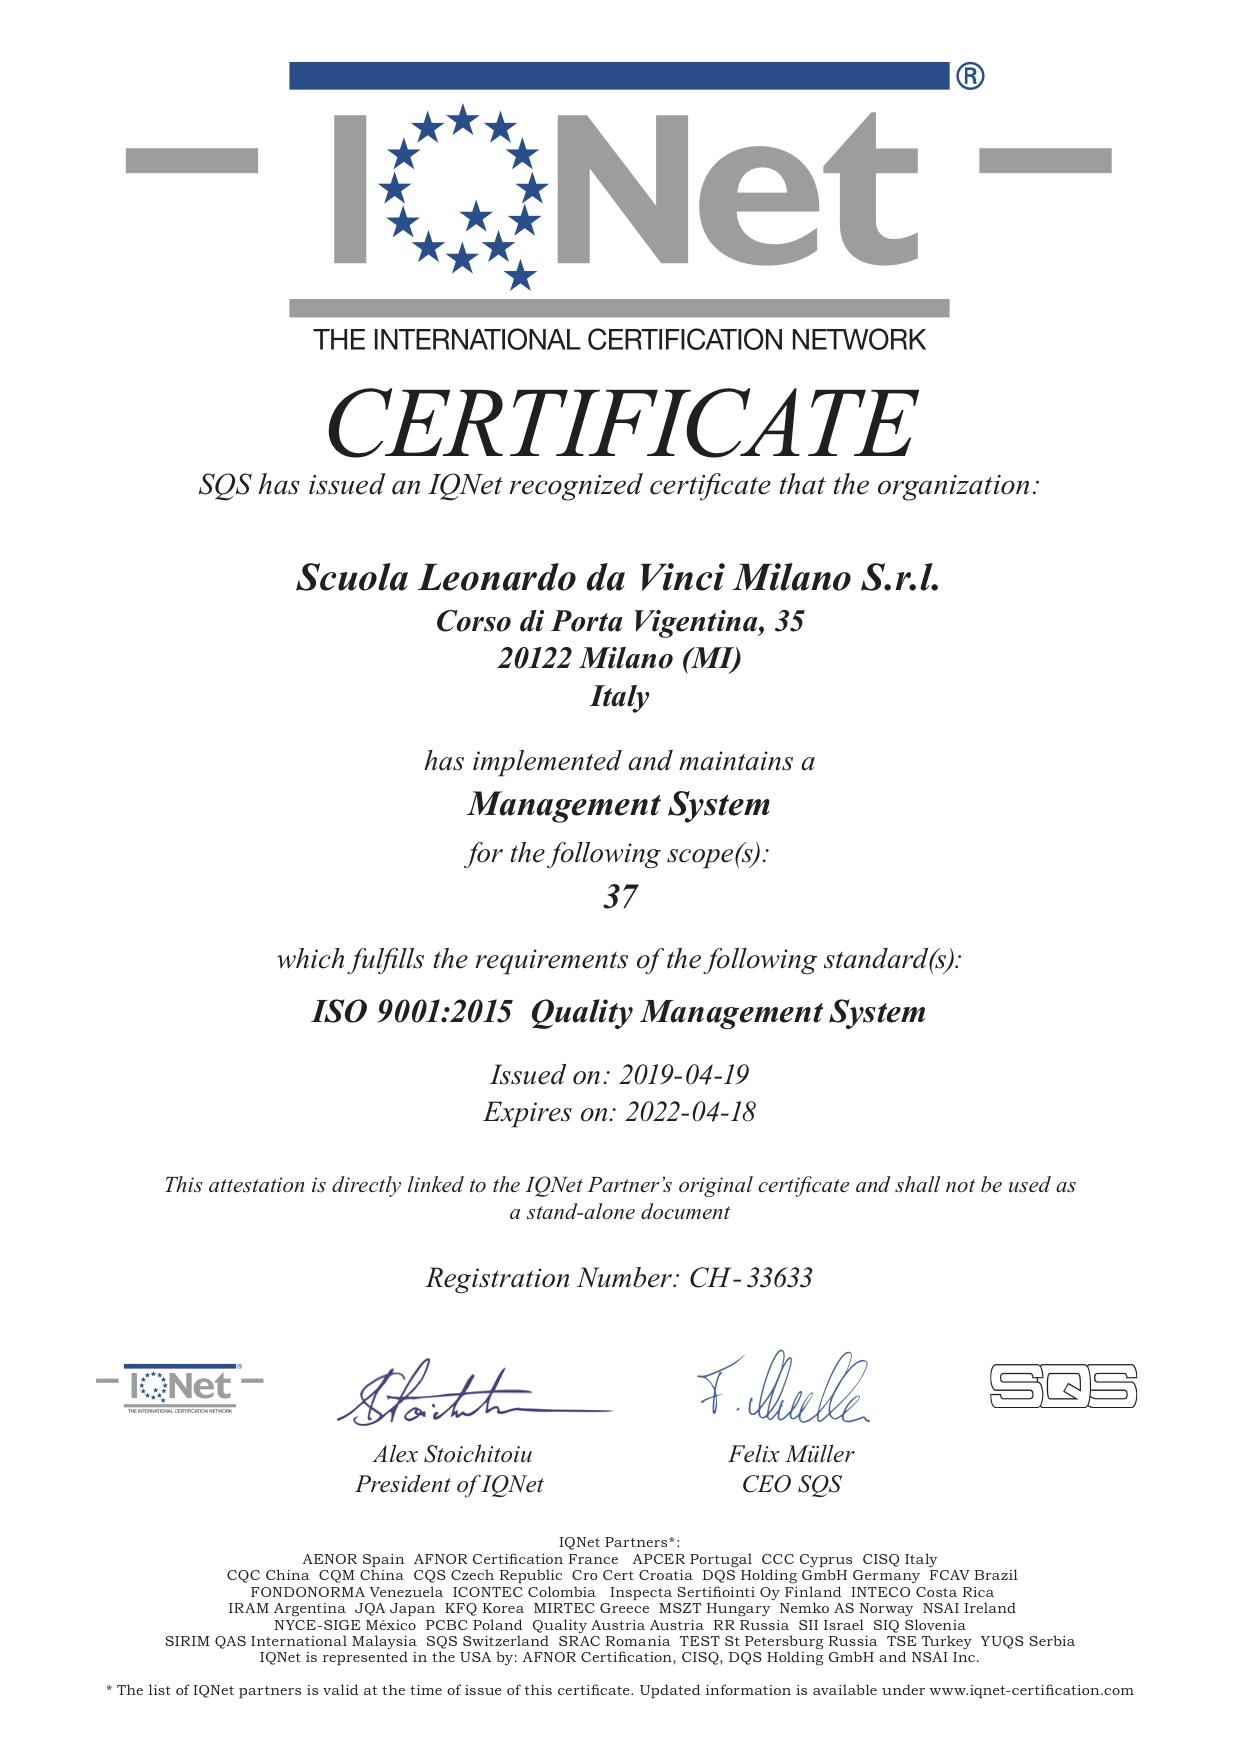 Our Italian school in Milan is certified to meet ISO 9001:2008, the internationally recognized standard for quality management systems